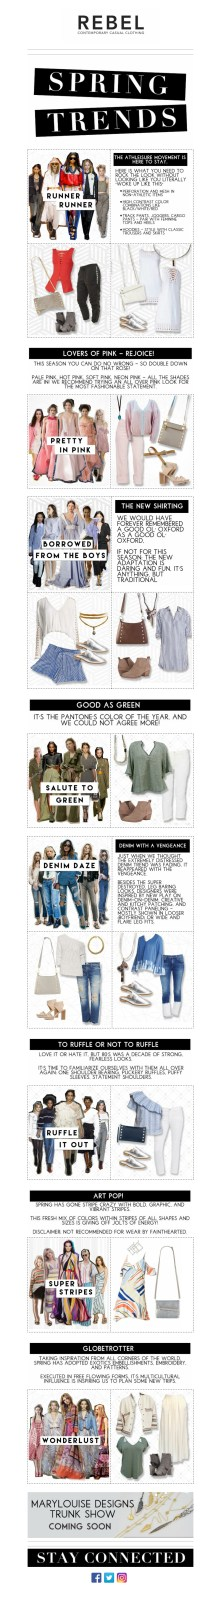 S/S '17 Trends Email